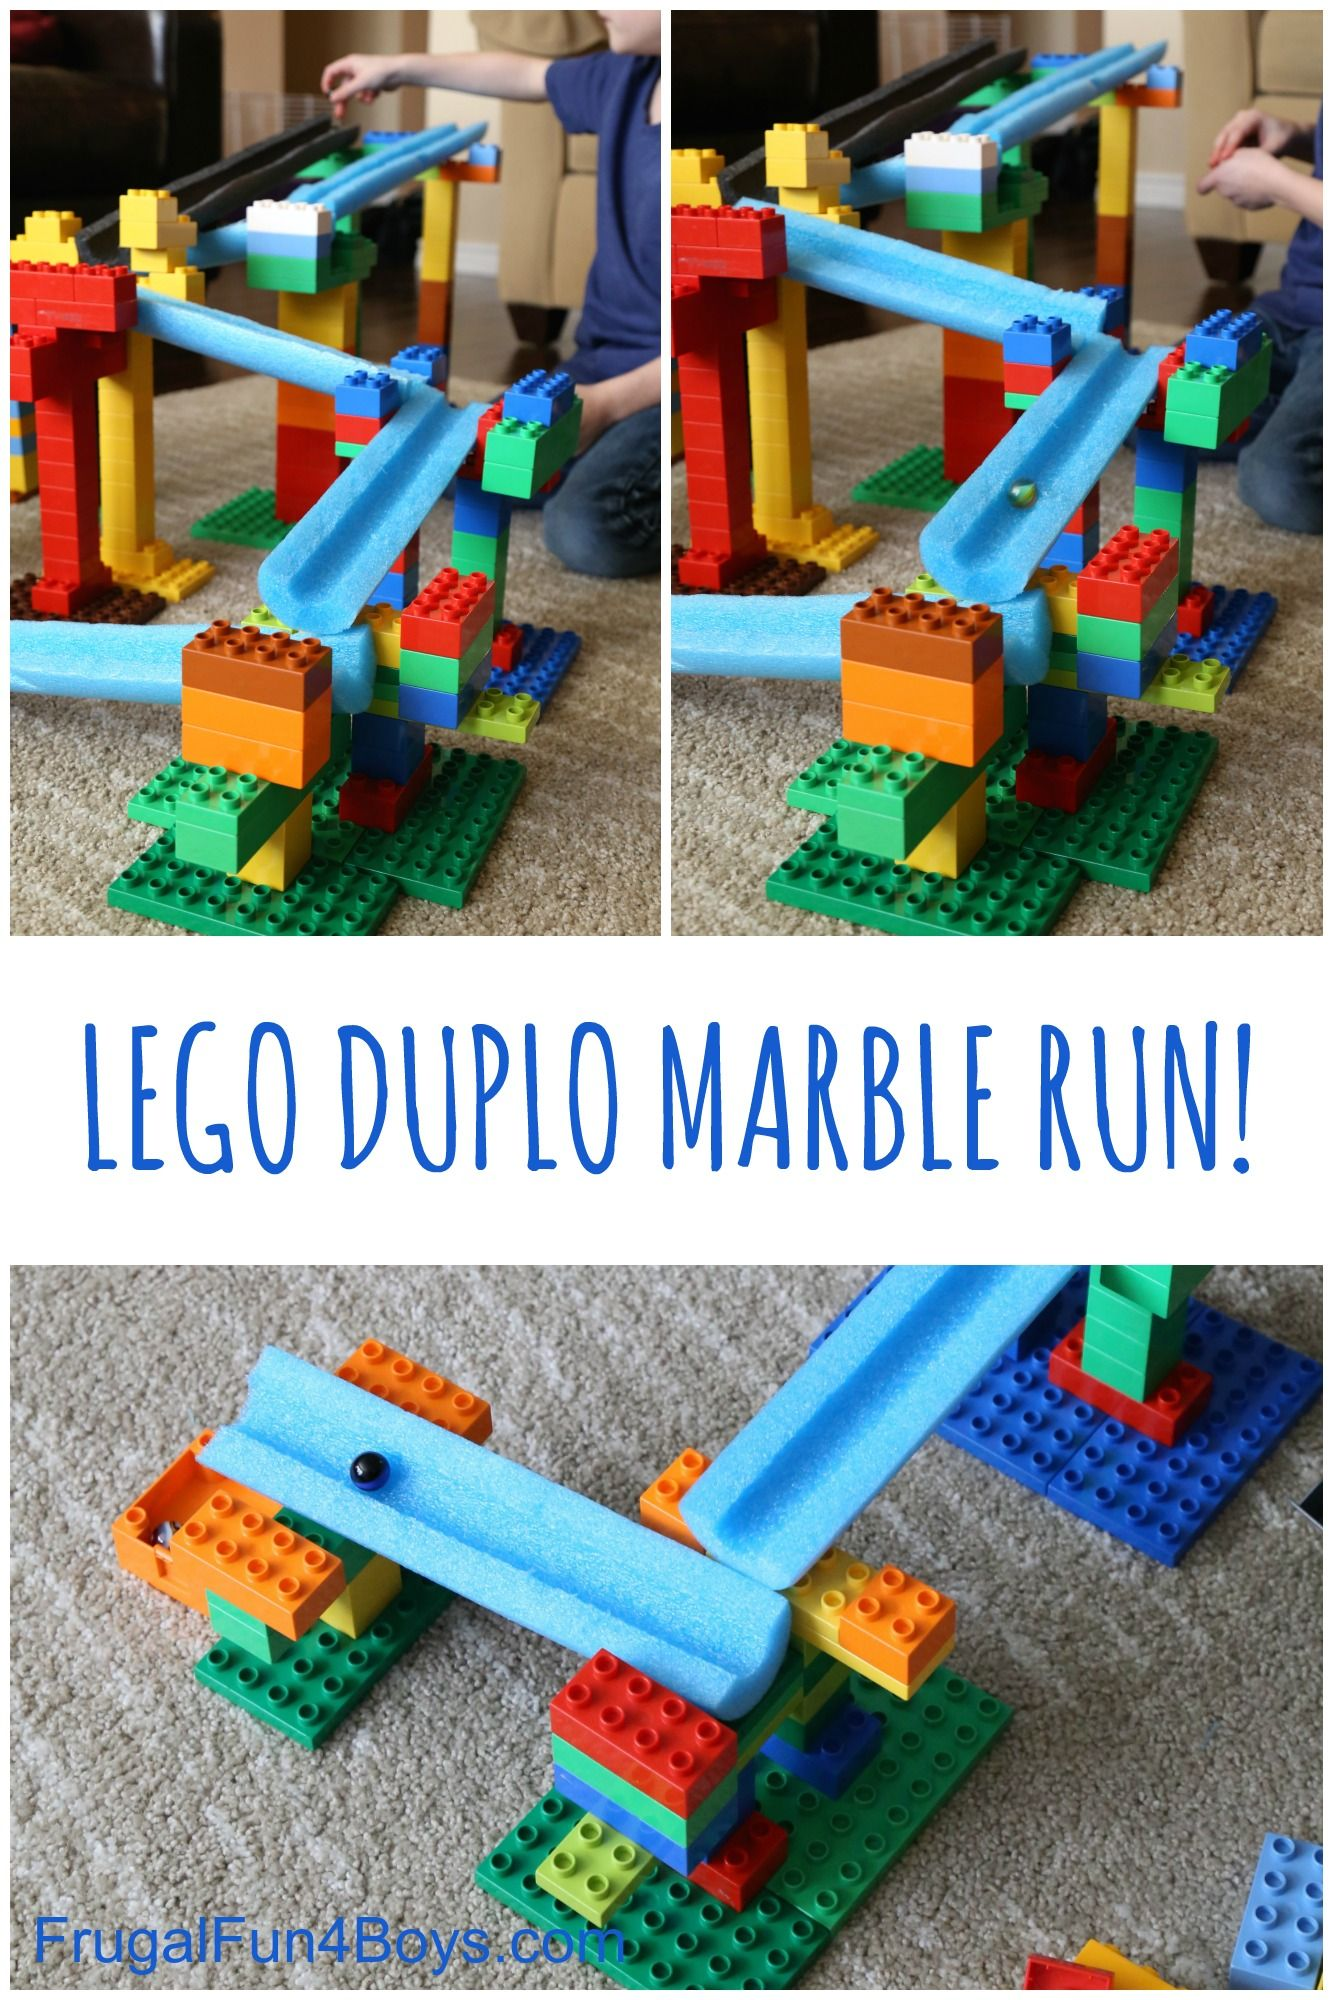 STEM Building Challenge for Kids LEGO Duplo and Pool Noodle